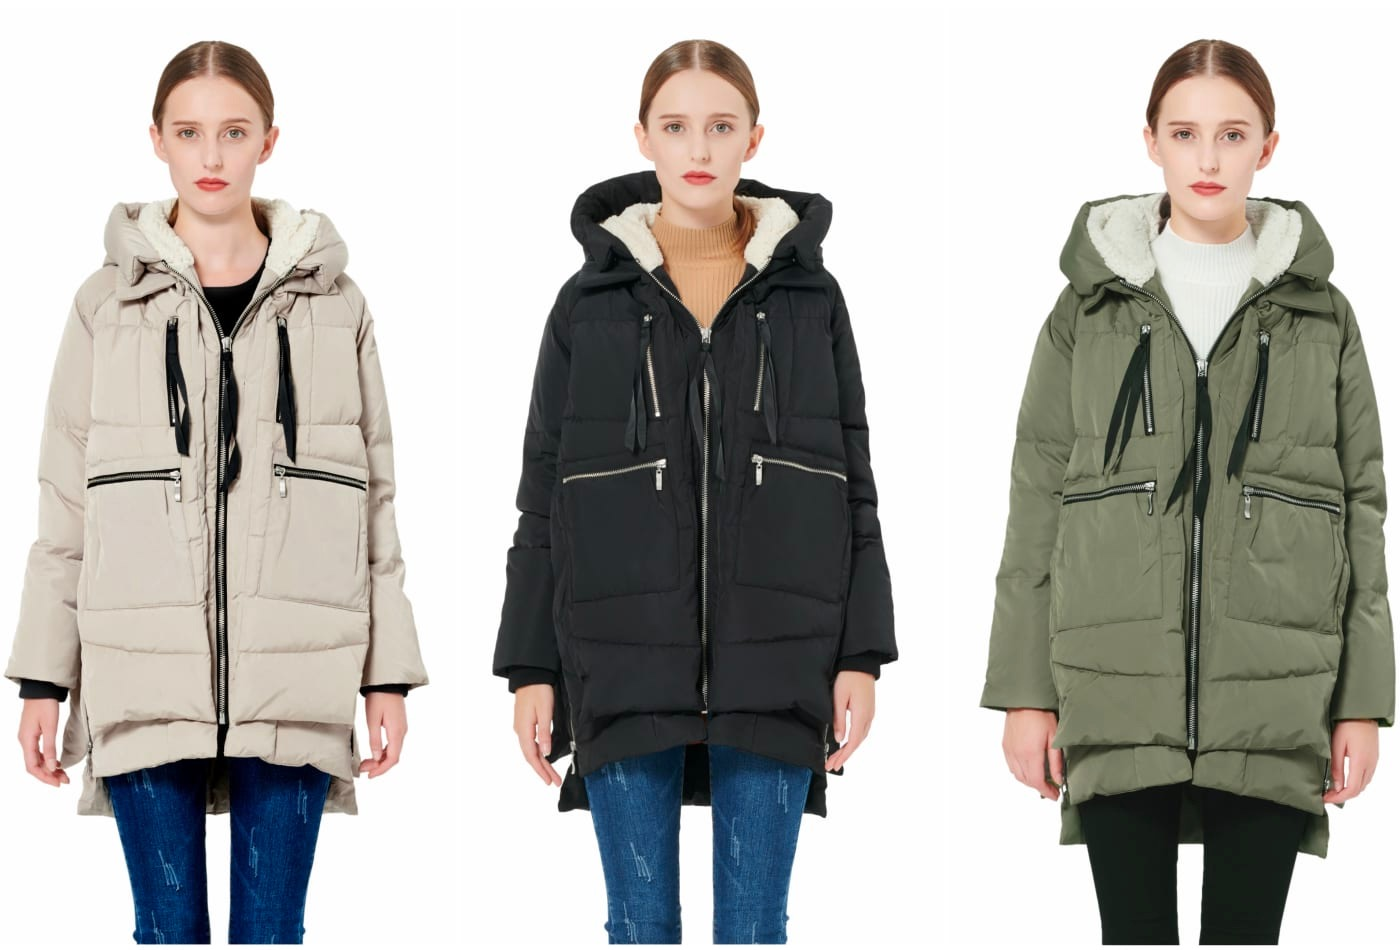 This Viral Amazon Coat Is a Must Have This Winter